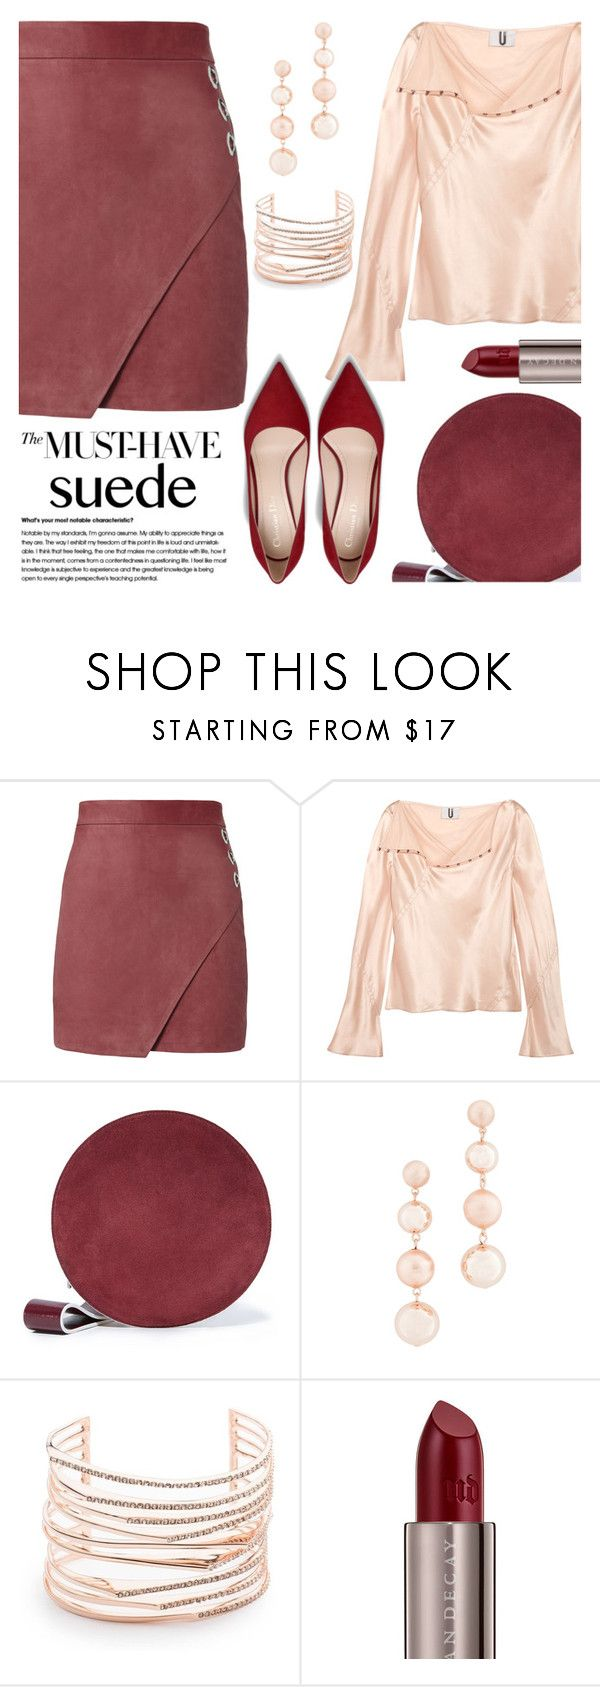 """""""The Must Have: Suede"""" by brendariley-1 ❤ liked on Polyvore featuring Michelle Mason, Topshop Unique, Diane Von Furstenberg, Rebecca Minkoff, Alexis Bittar and Urban Decay"""